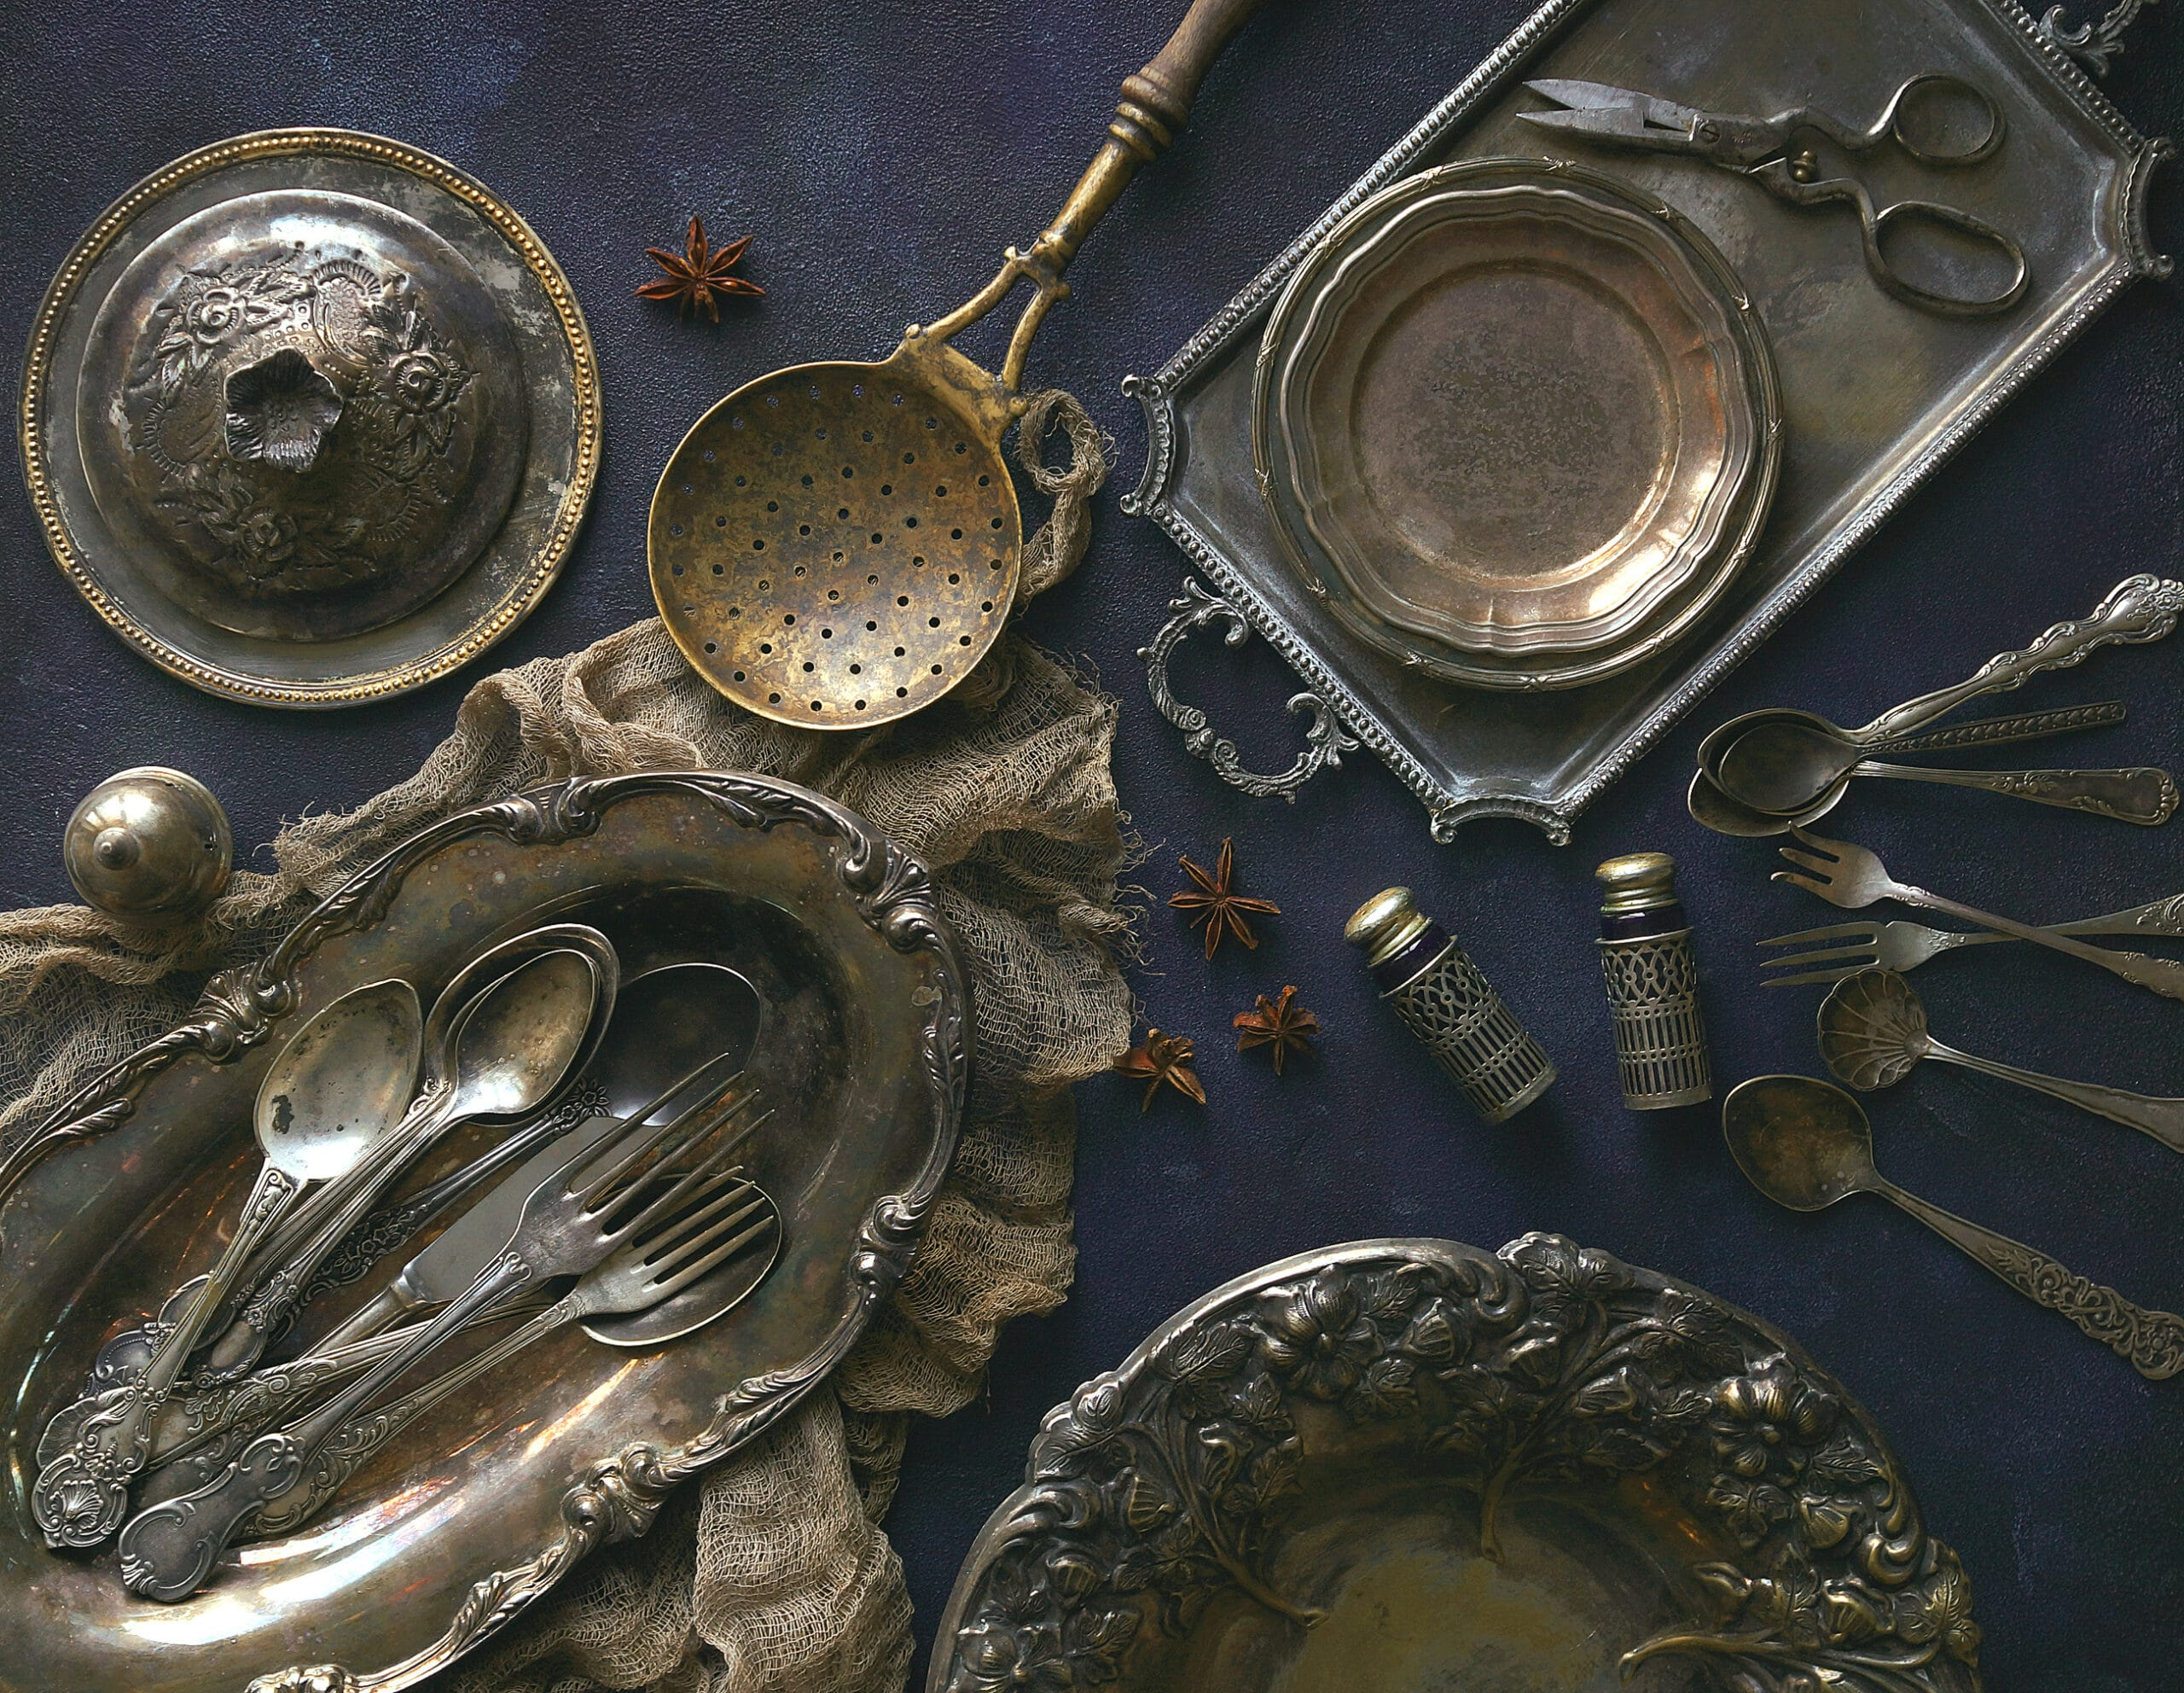 Old kitchen appliances, Vintage cutlery on dark blue background, Top view, Selected focus, Square